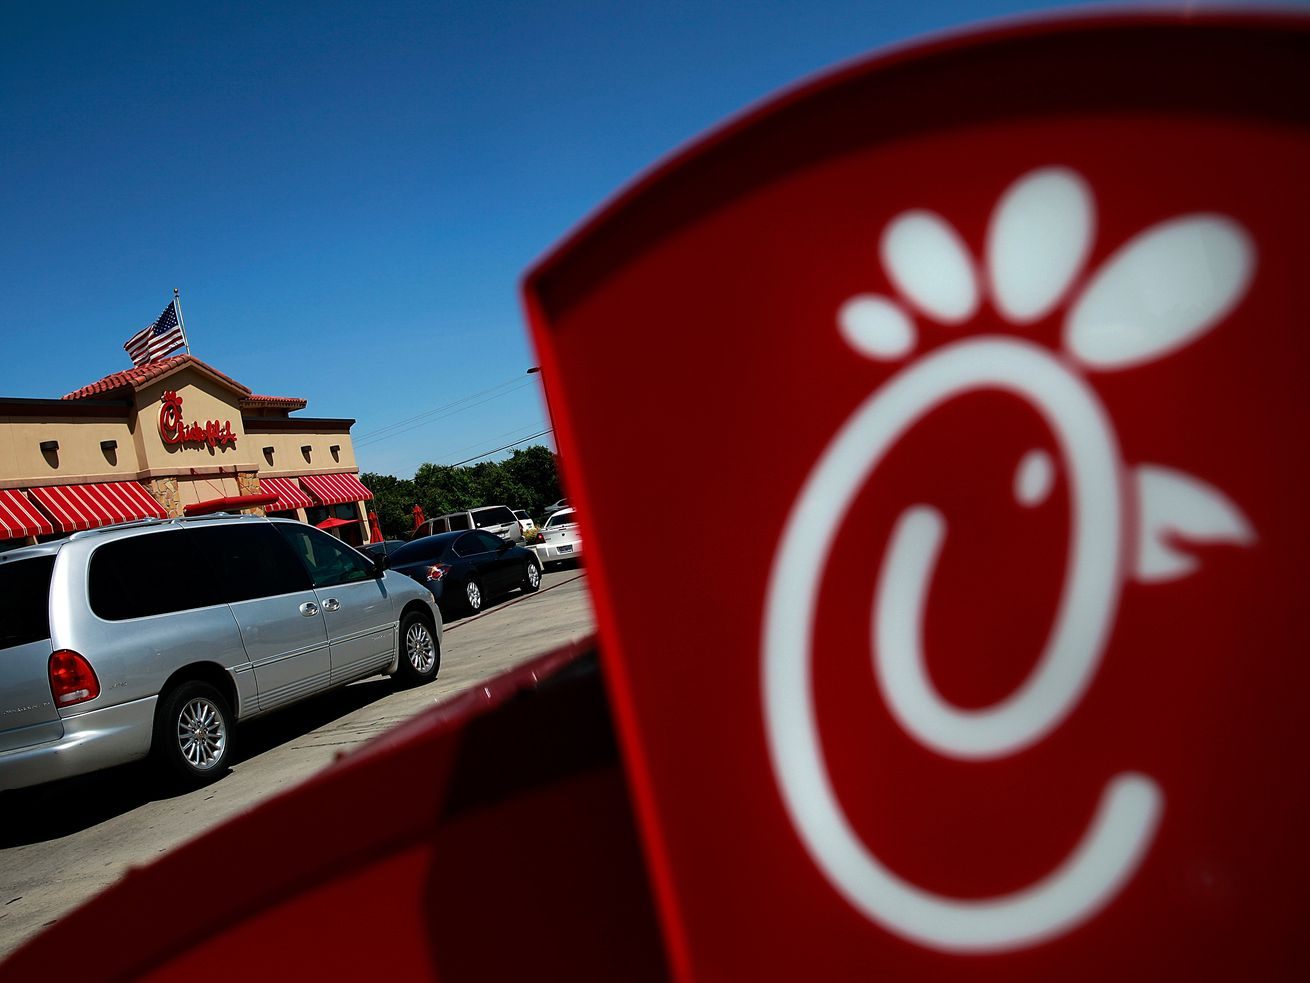 Drive-through customers wait in line at a Chick-fil-A restaurant on August 1, 2012, in Fort Worth, Texas.